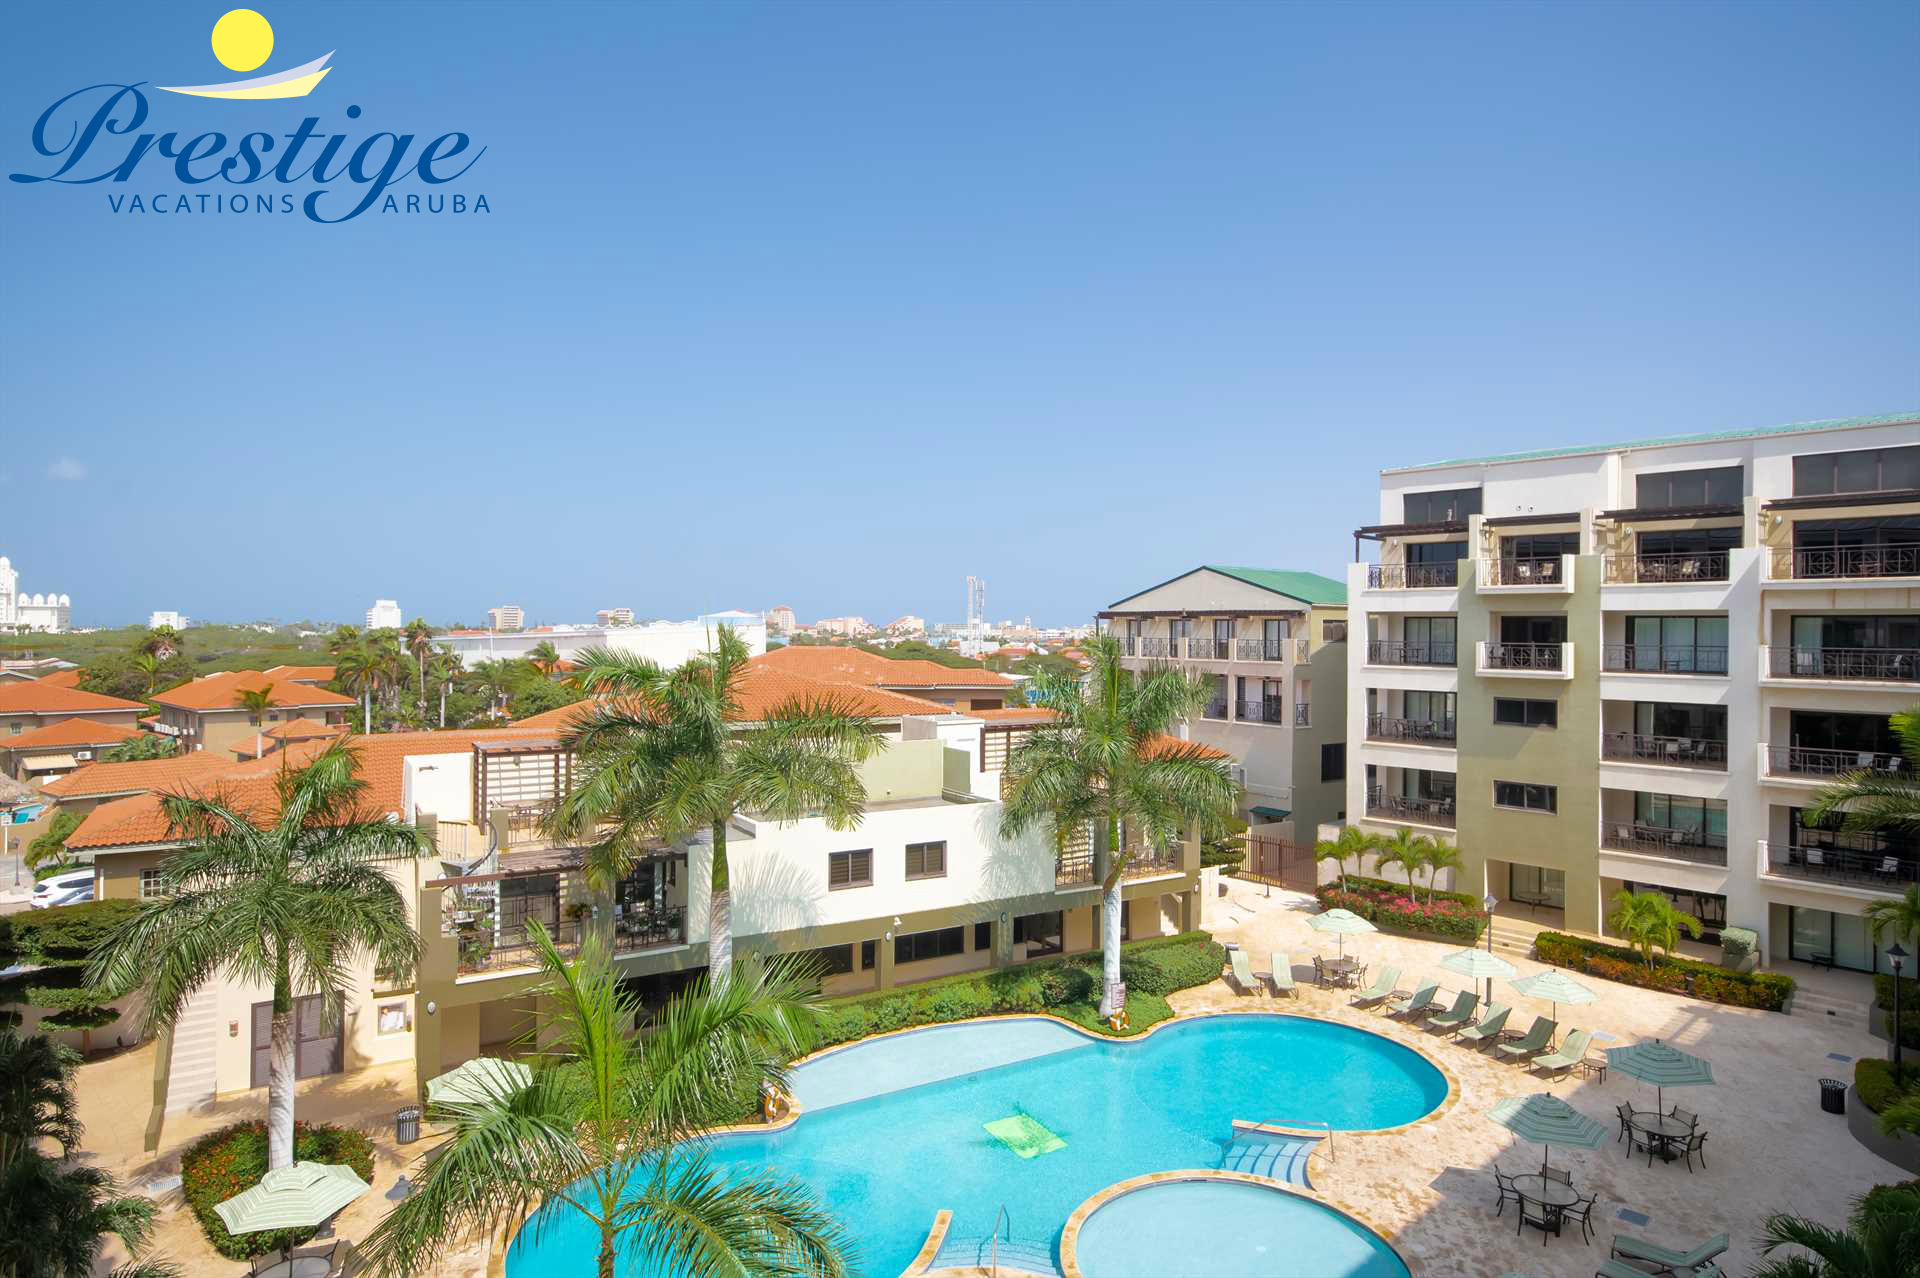 Wake up to paradise at the King Palm Two-bedroom condo